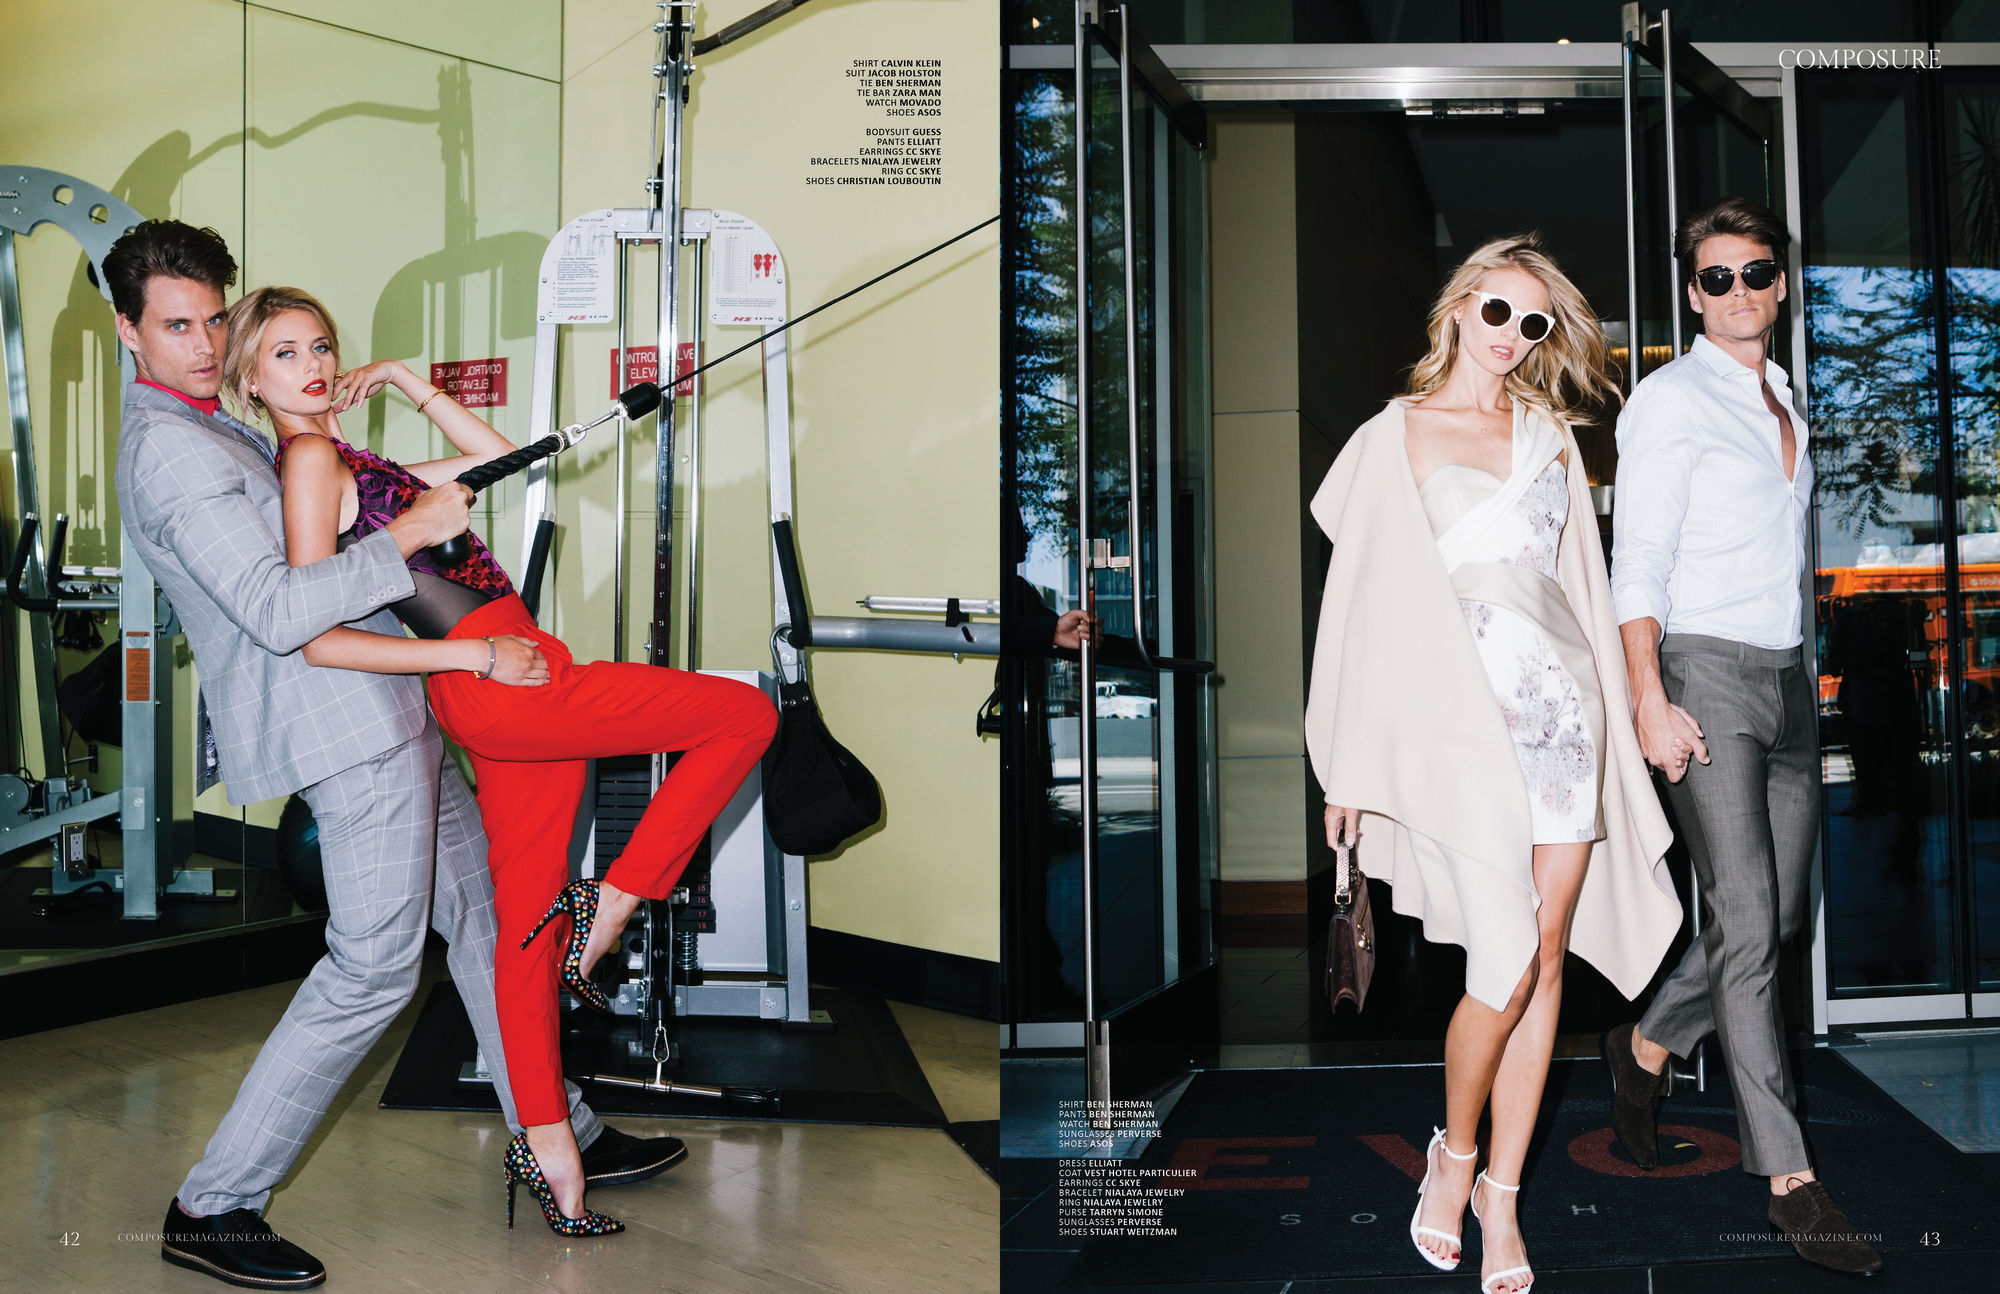 Fashion Editorial photographed by John Hong and Styled by Dominique Aimee